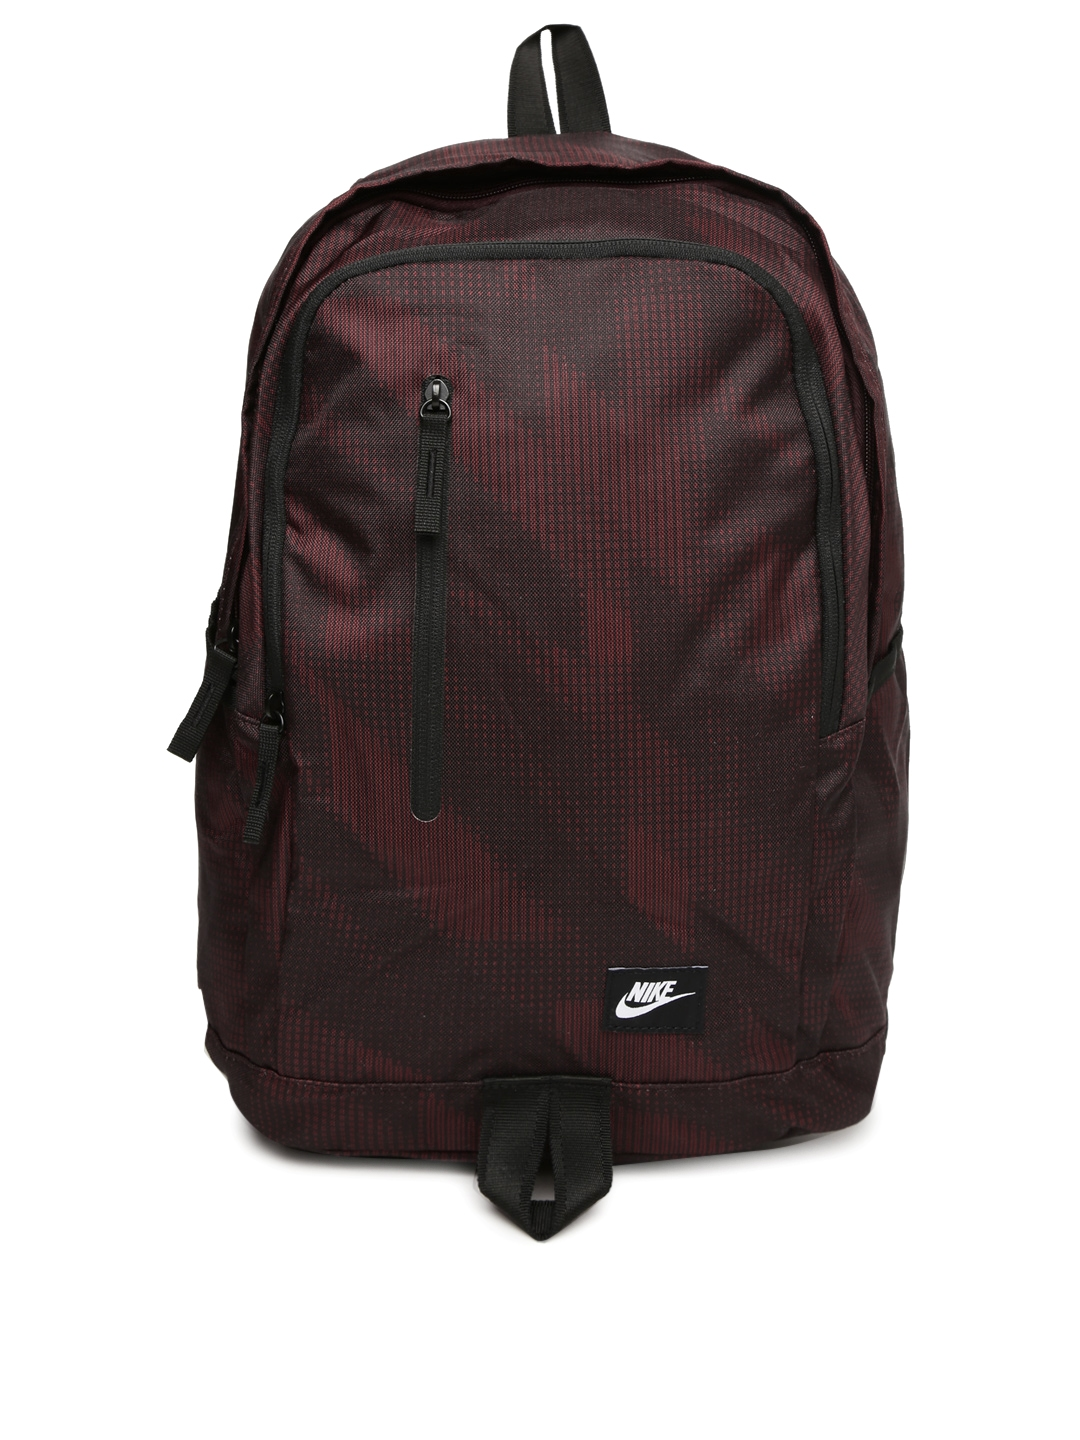 75c3fe81a9 Buy Nike Unisex Burgundy All Access Soleday Backpack - Backpacks for ...